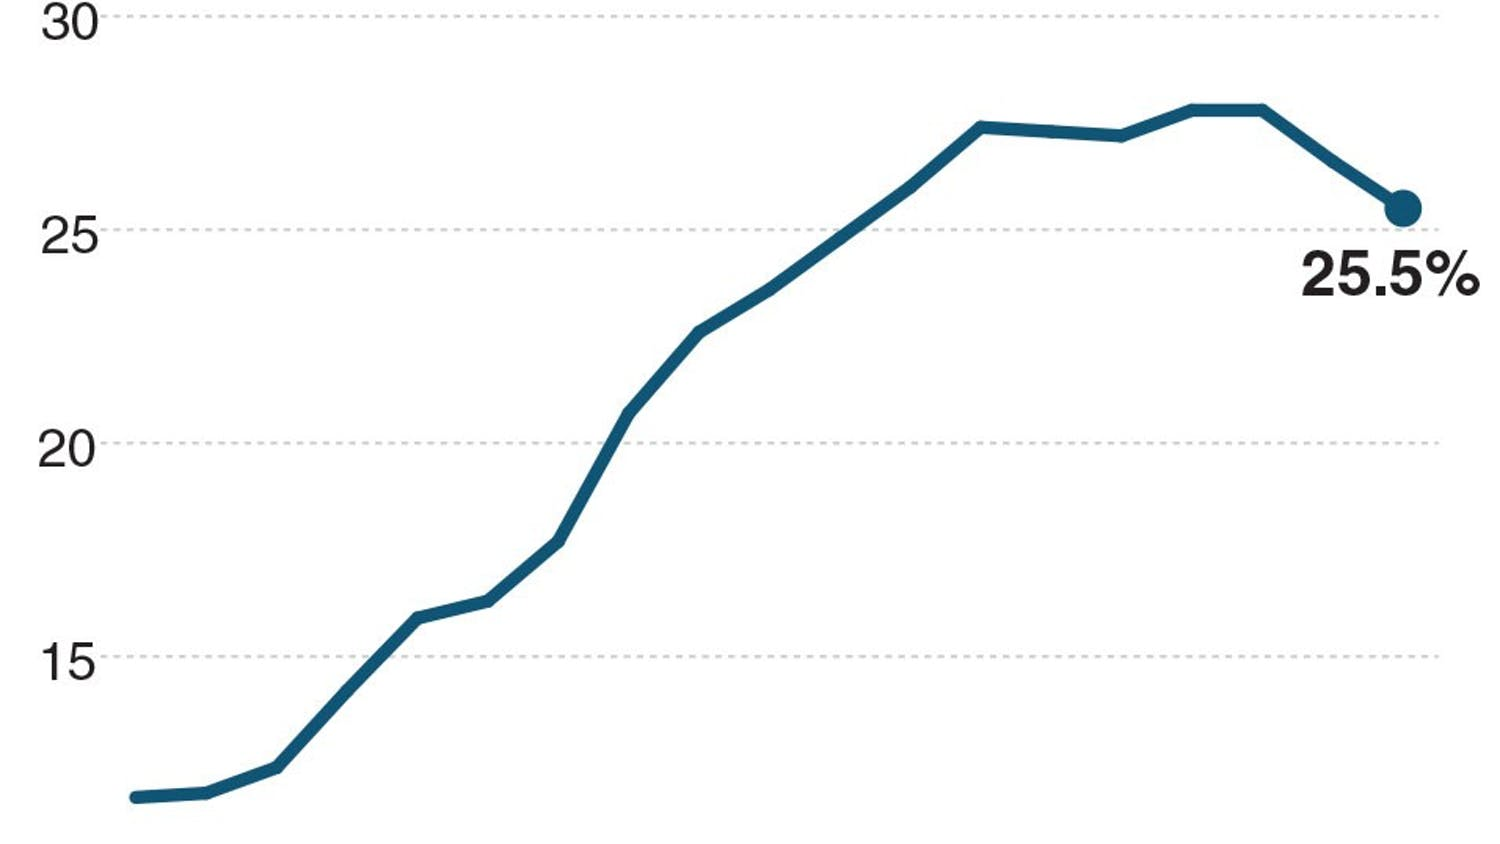 Chart showing the unemployment rate in Greece since 2010.